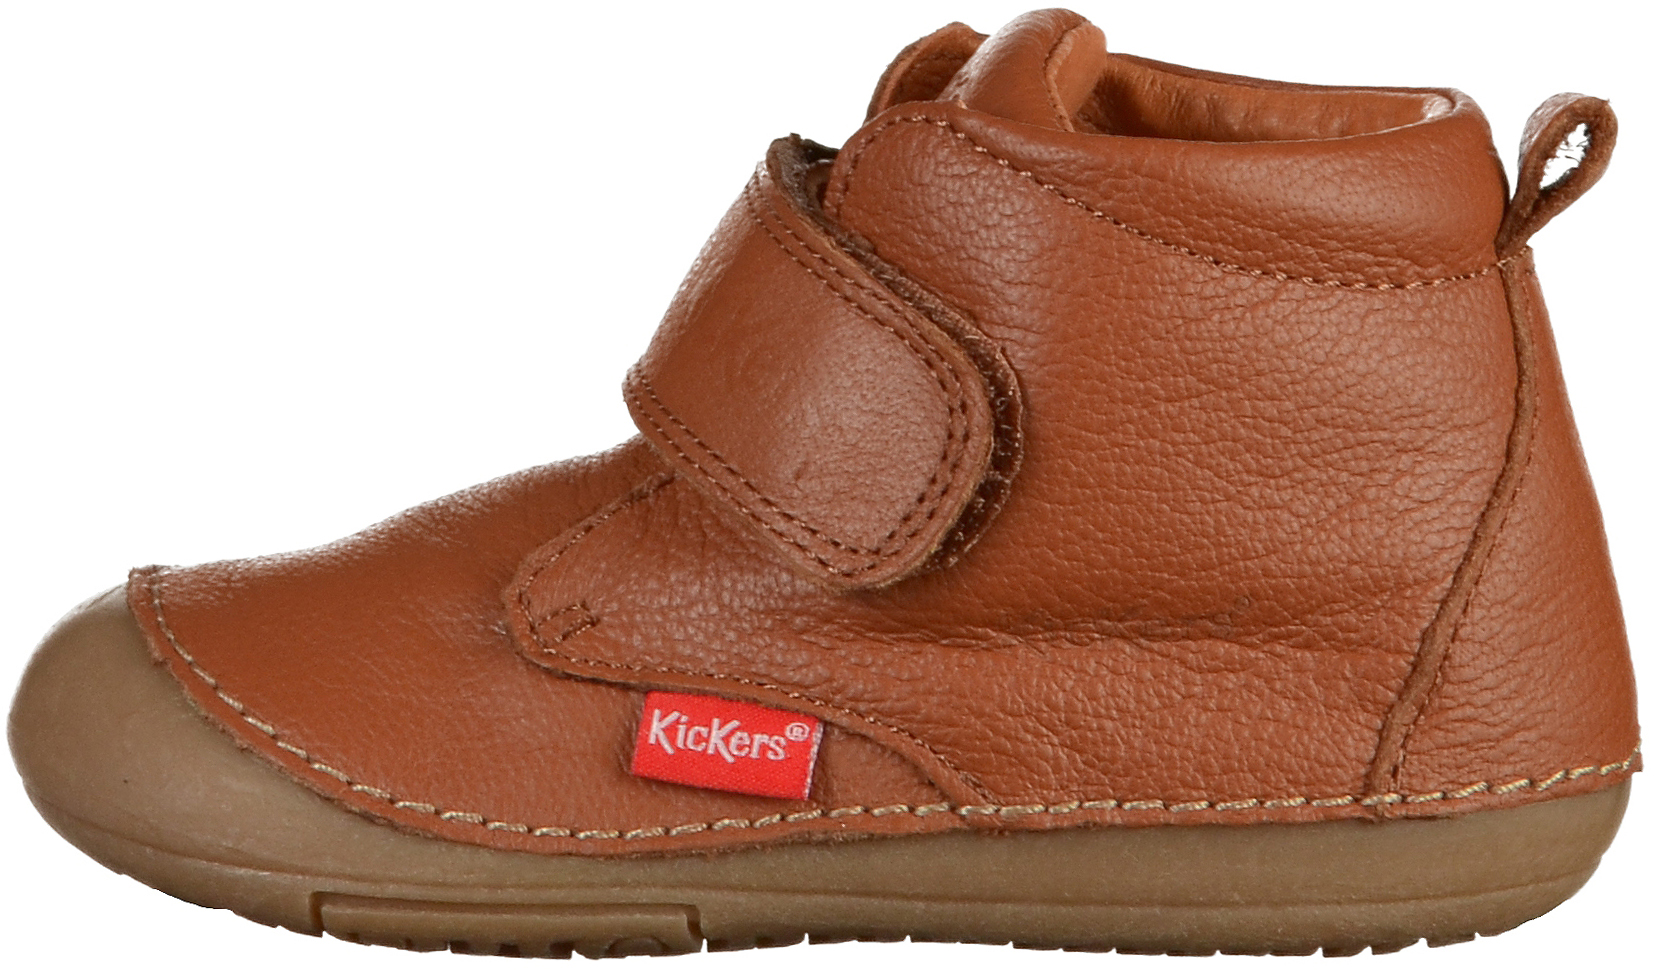 kickers | Kid's shoes | Surf4shoes